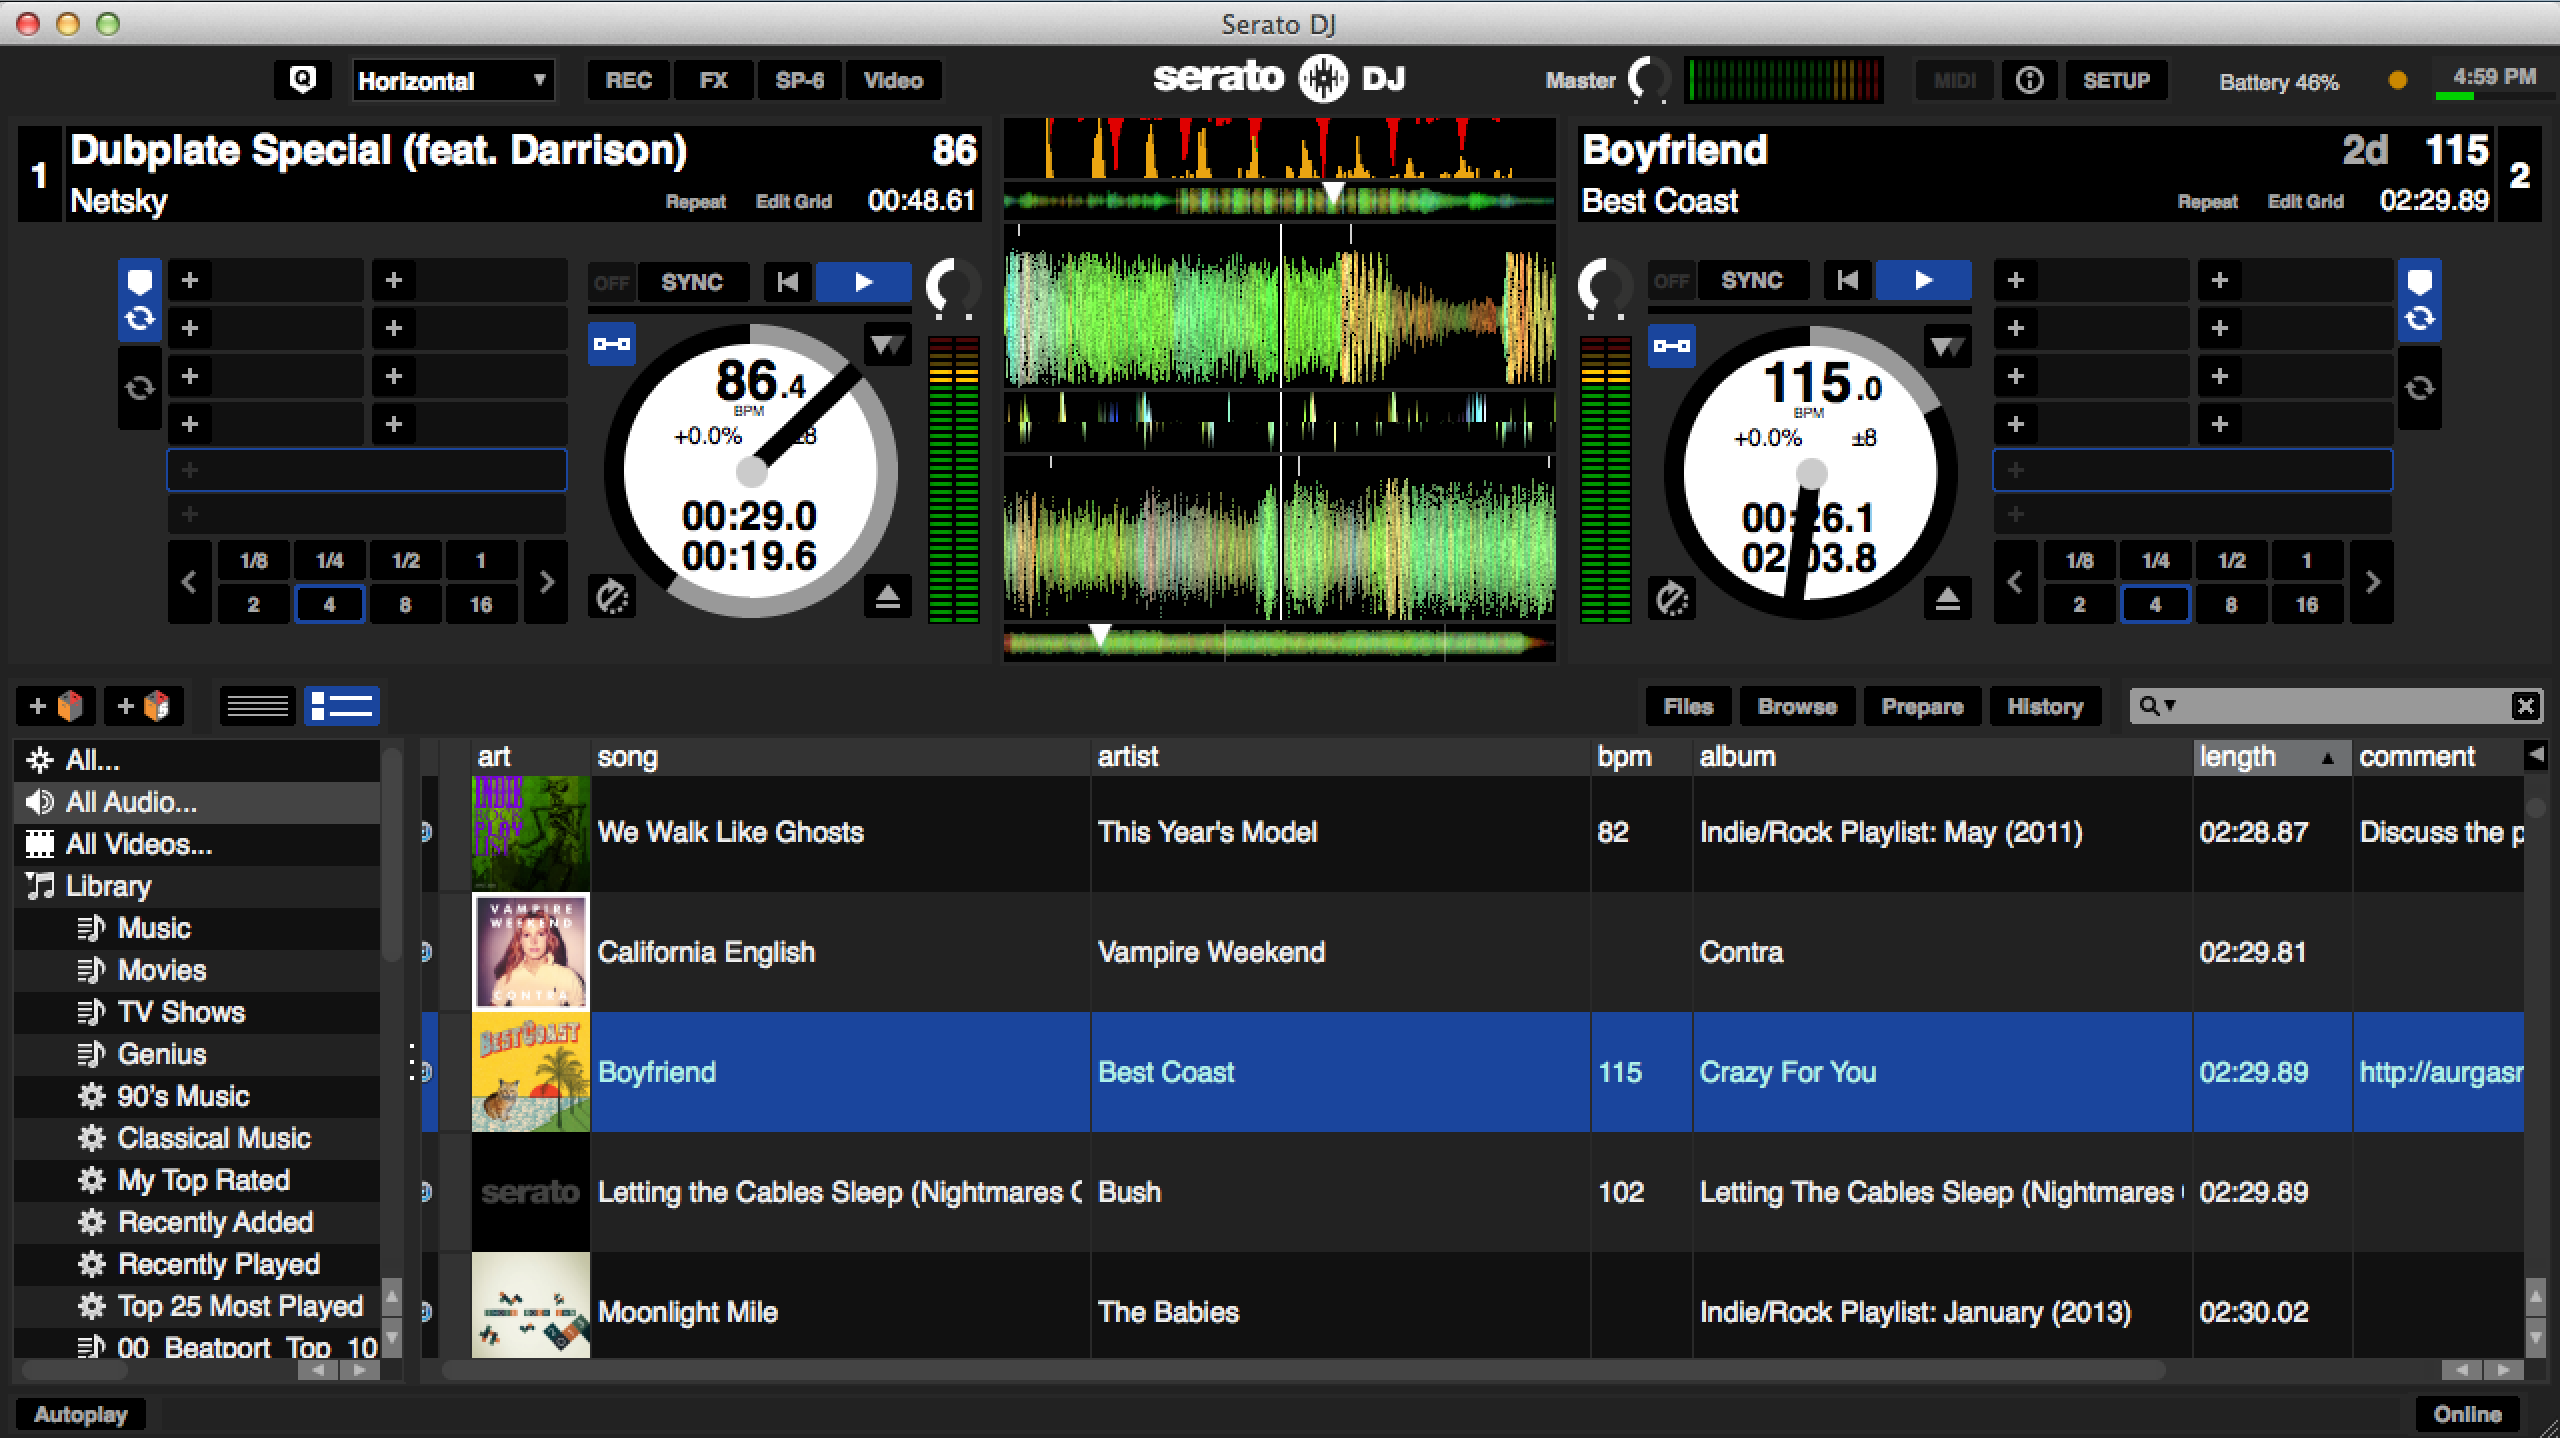 Serato DJ has four ways to view your waveforms depending on your preference. This one shows the Beat Match Display as well as the Tempo Match Display.